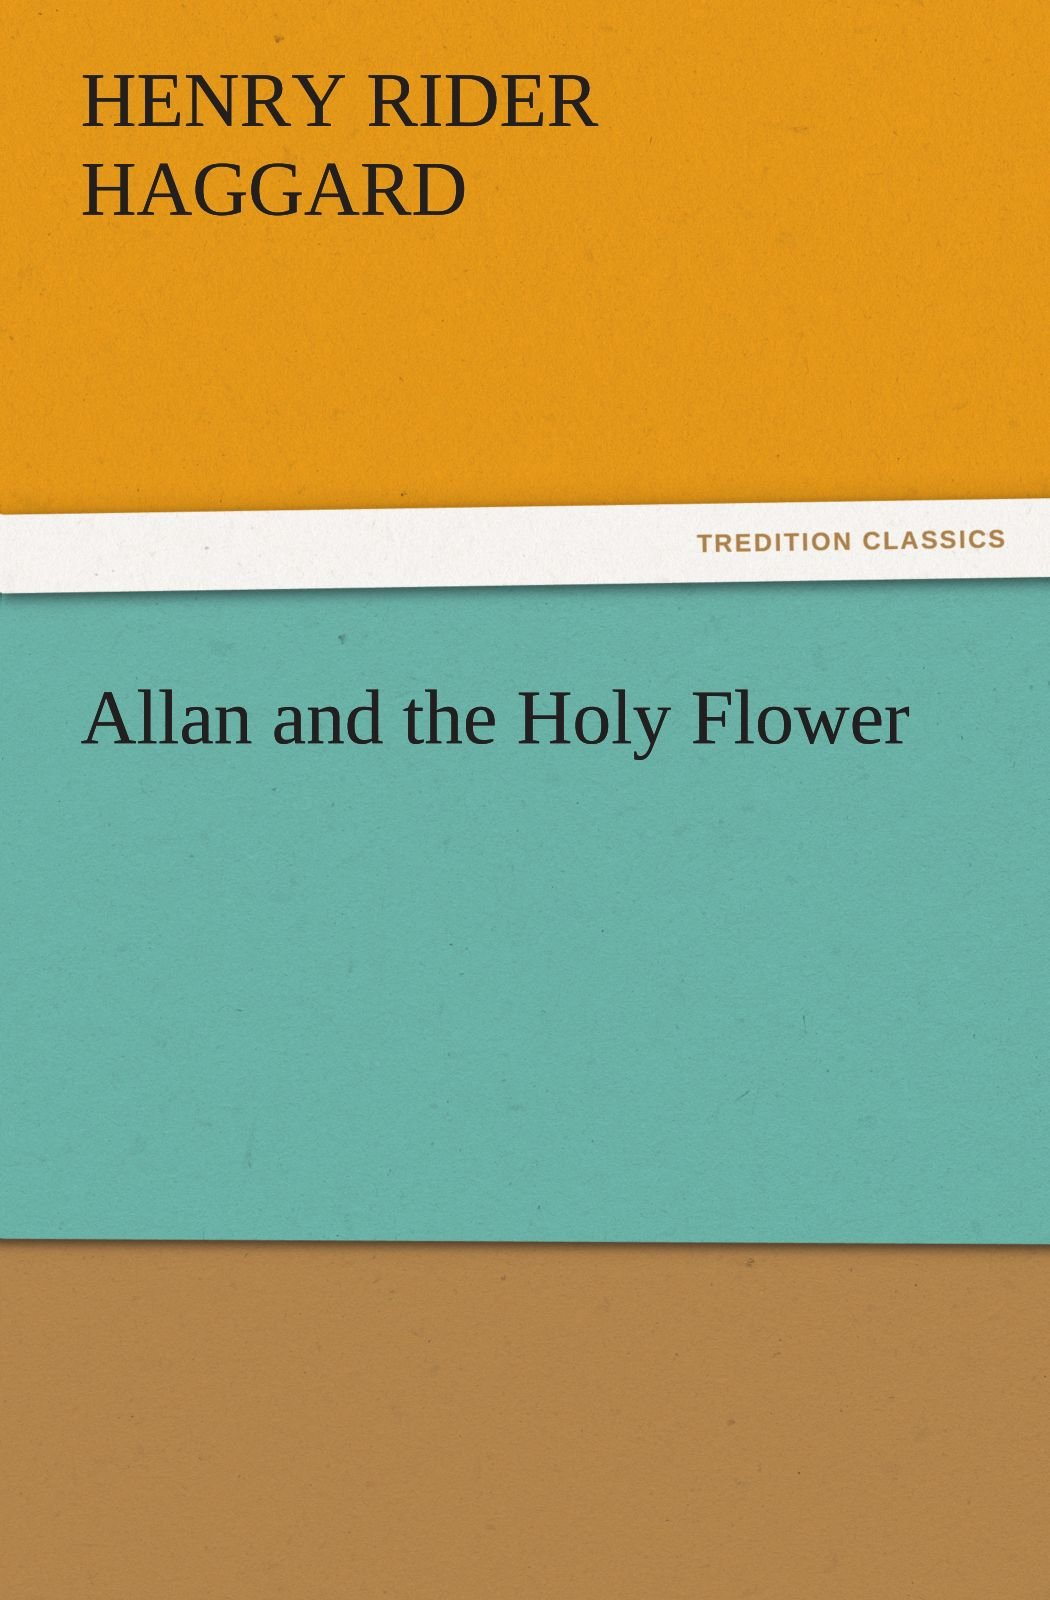 Read Online Allan and the Holy Flower (TREDITION CLASSICS) ebook